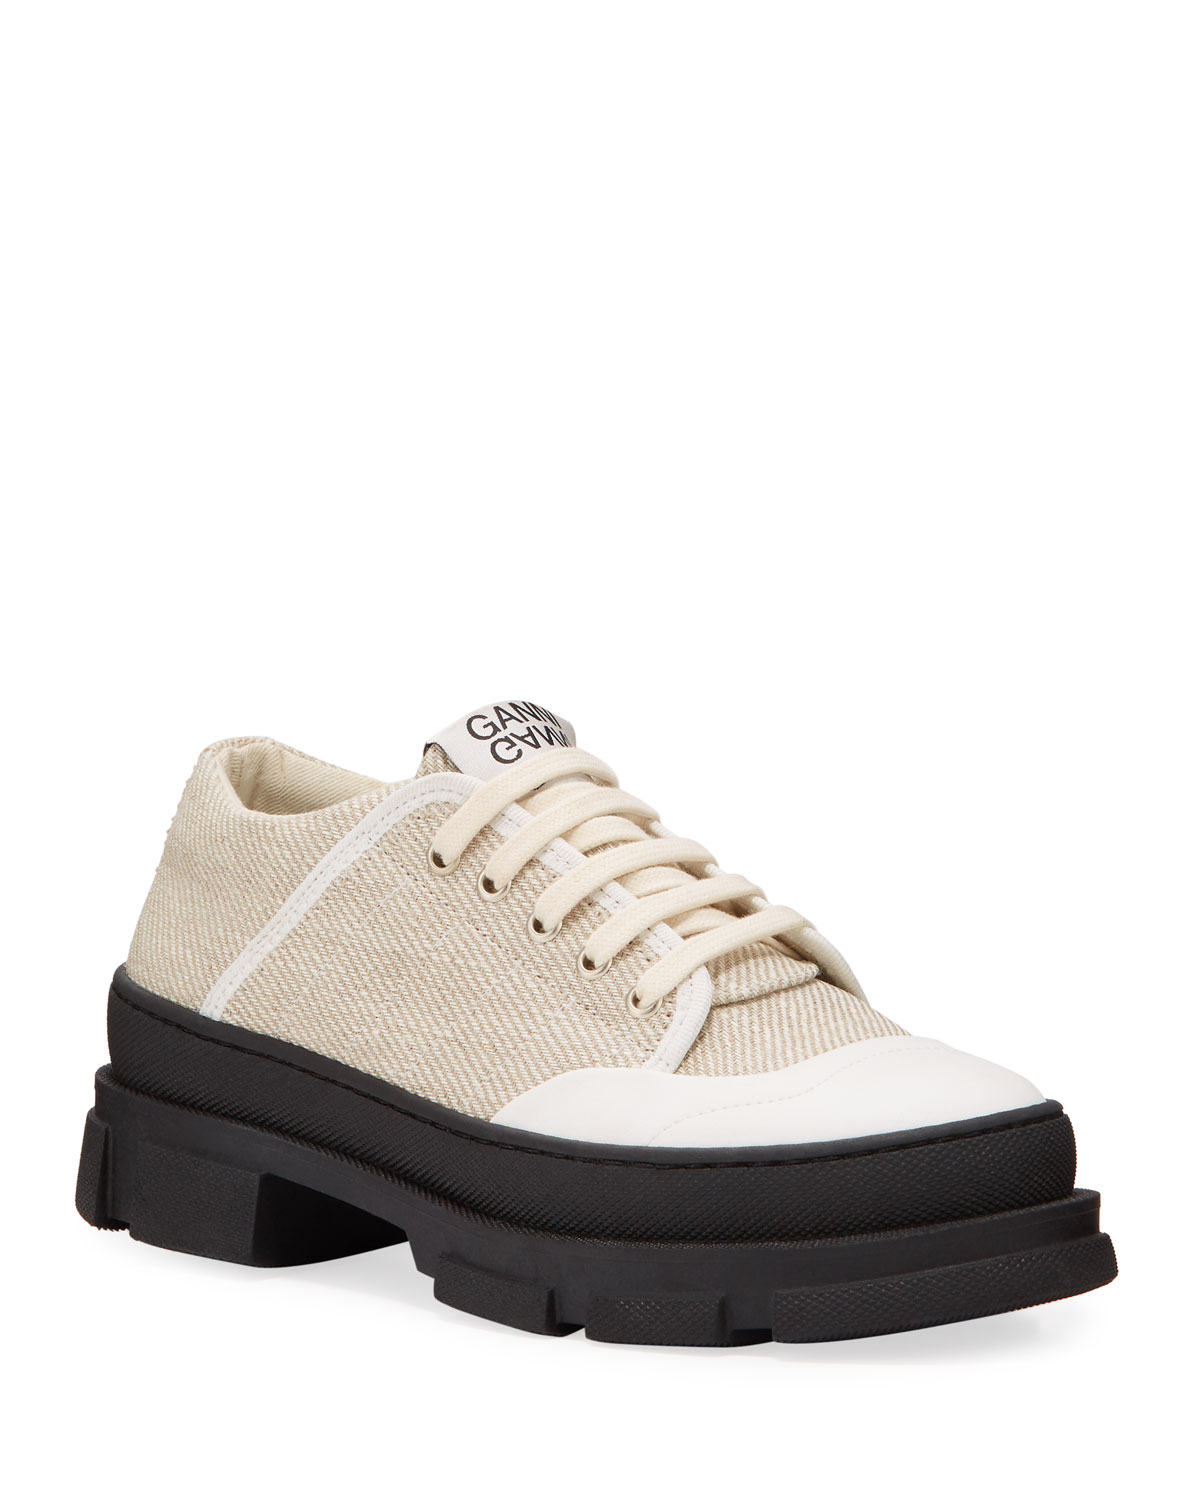 Ganni Sneakers HYBRID CANVAS LACE-UP SNEAKERS